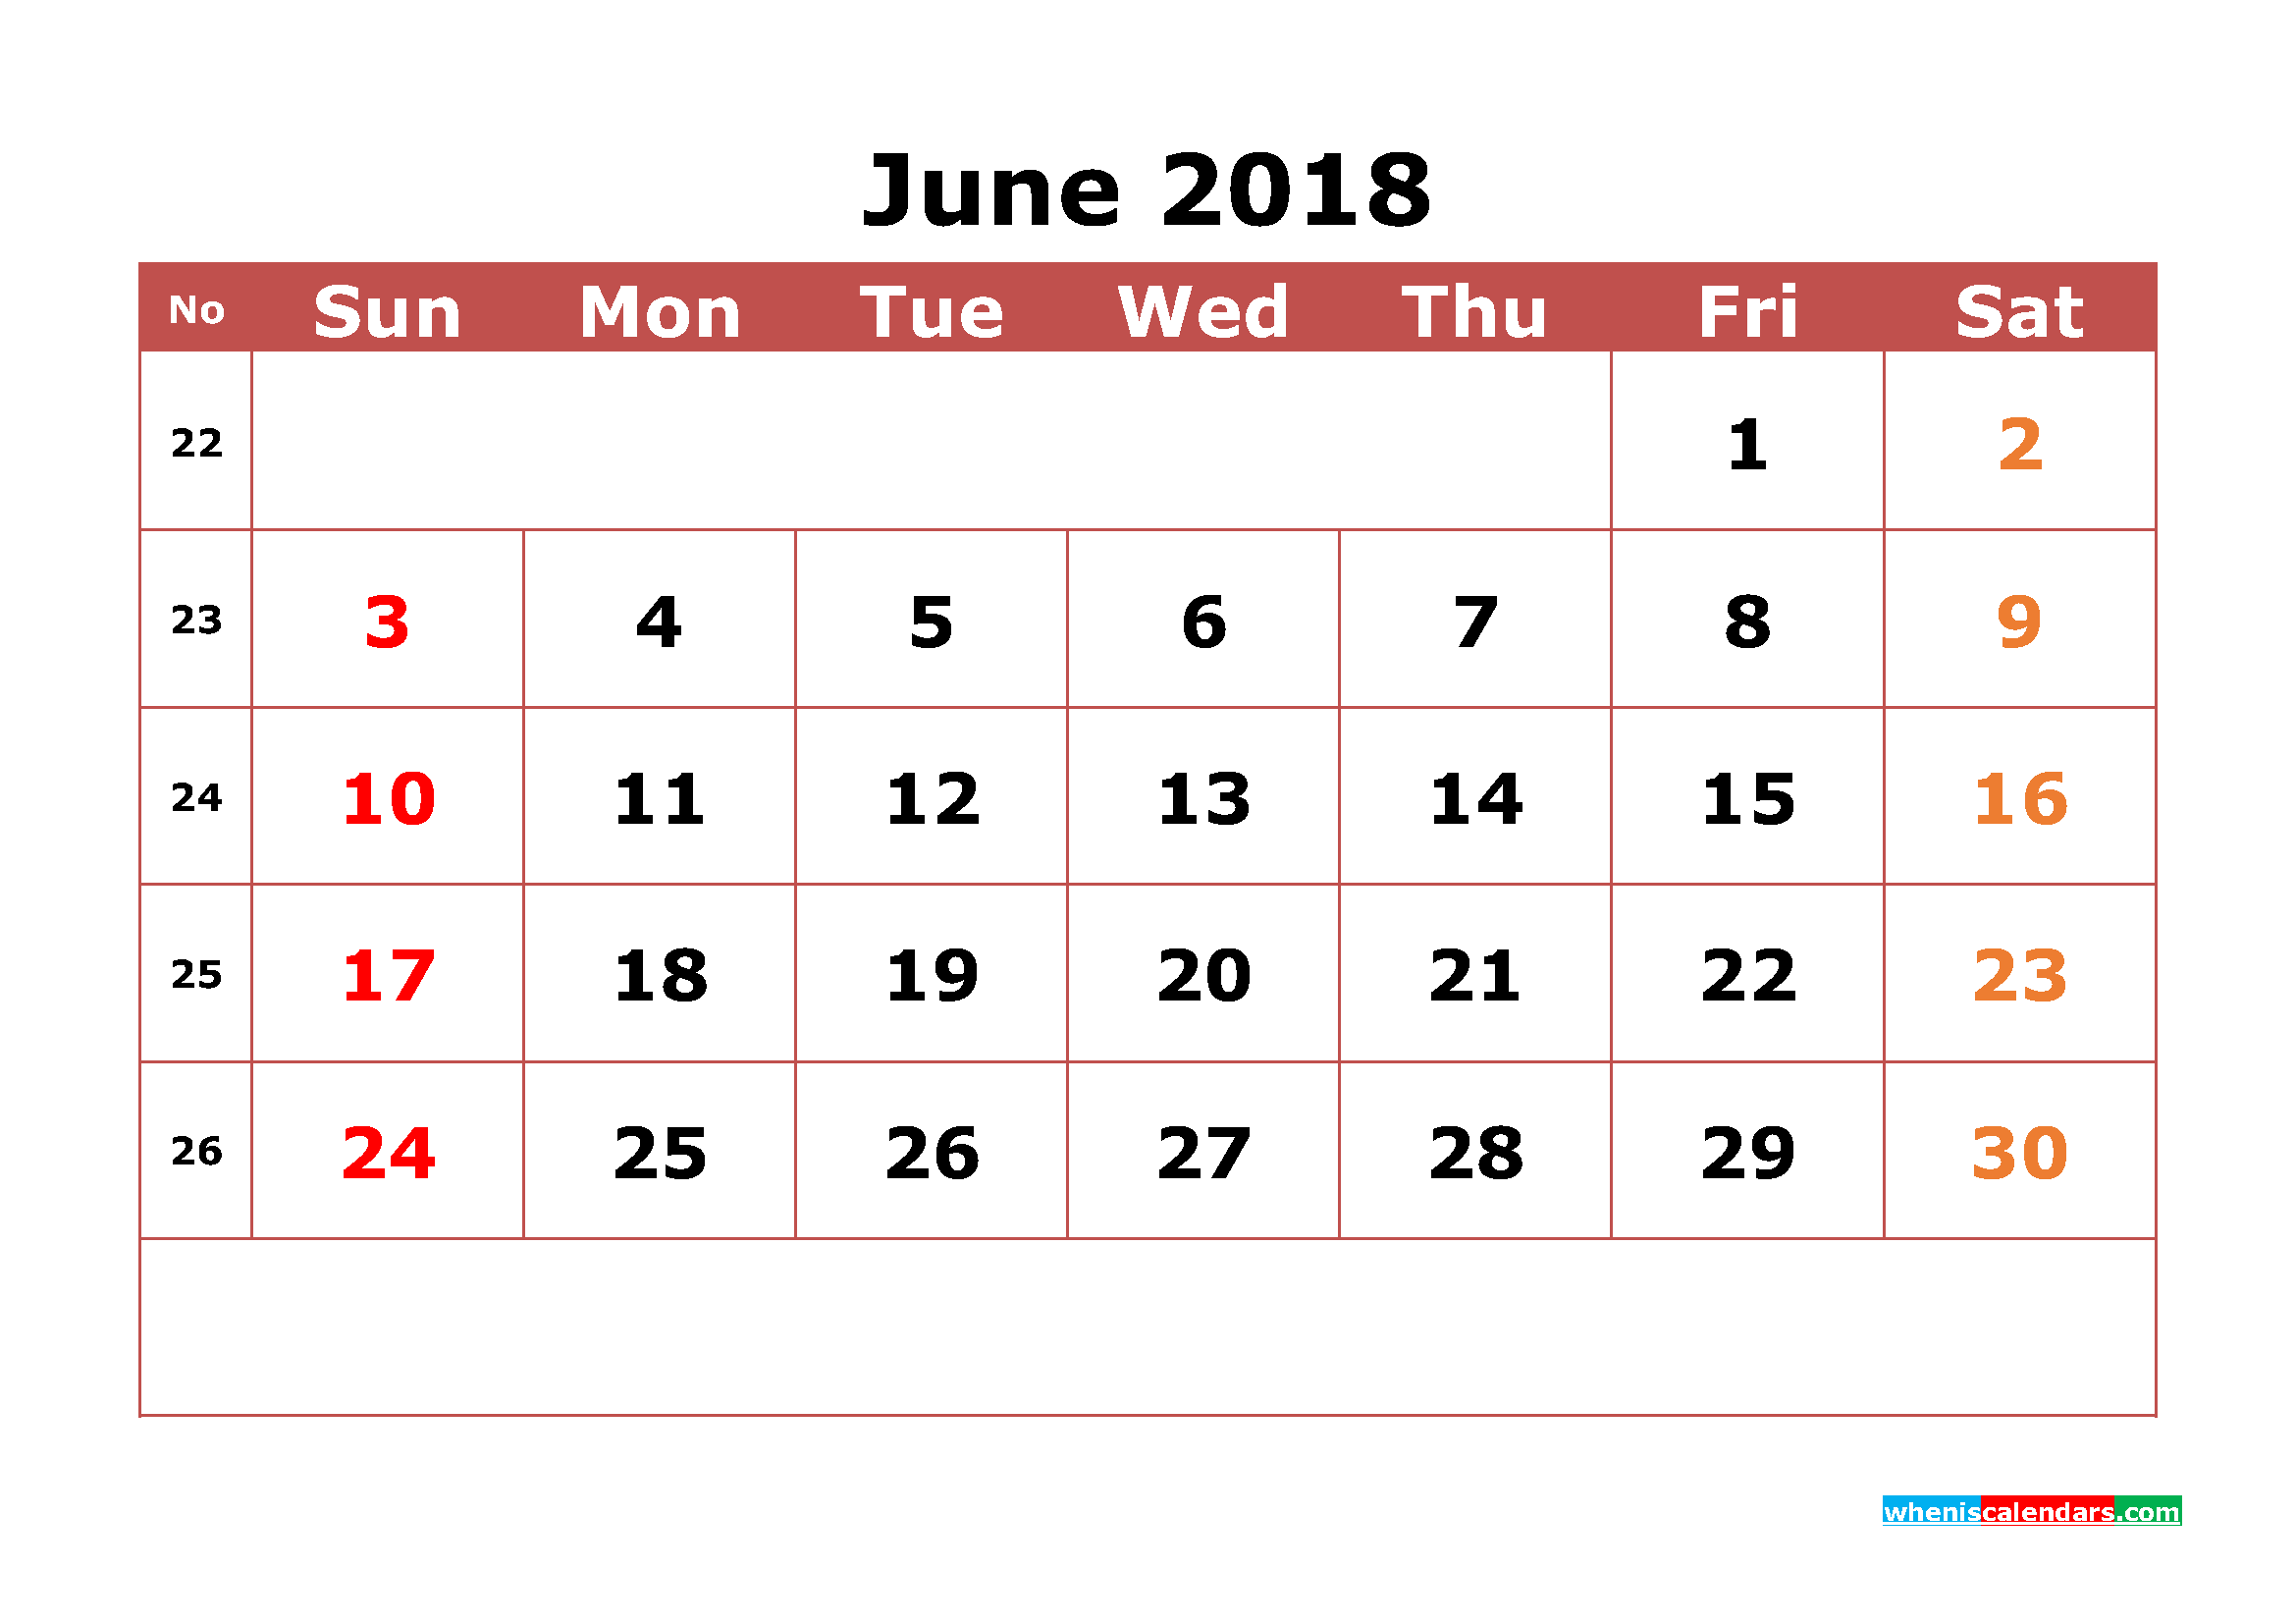 June 2018 Calendar Printable with Week Numbers Image